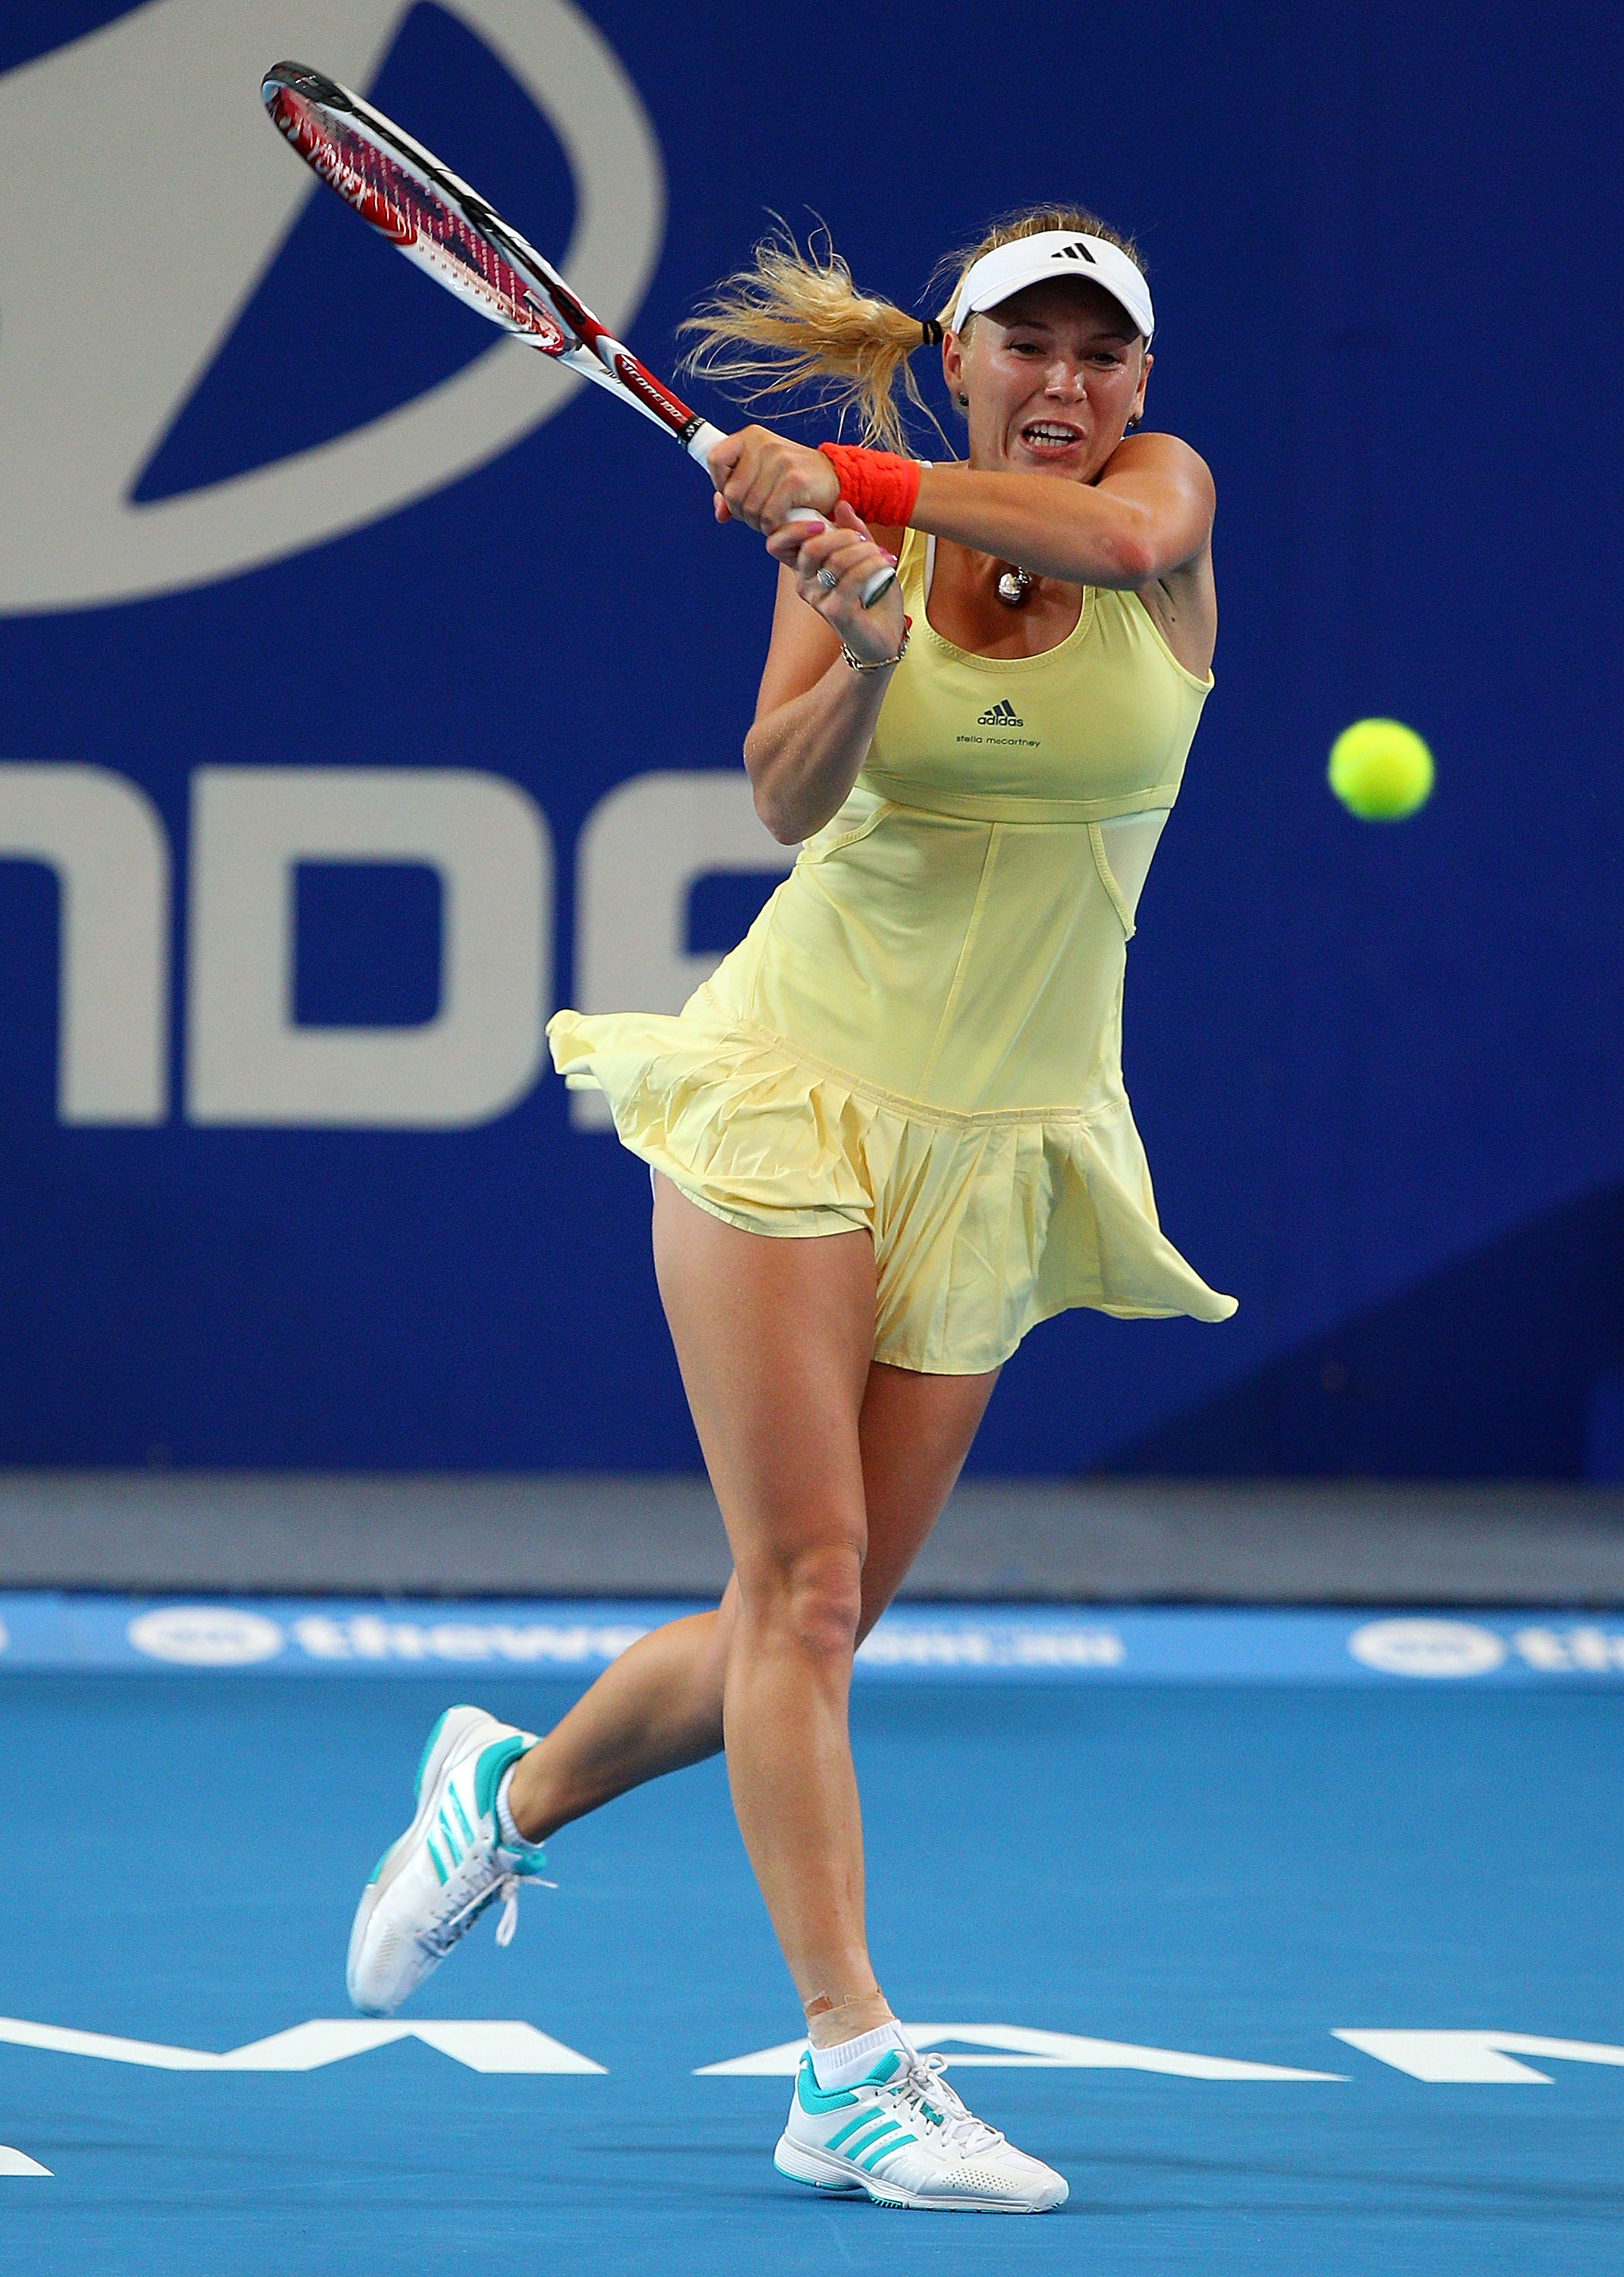 Same dress as the U.S. Open but in a soft yellow. A little sunshine for Sunshine.